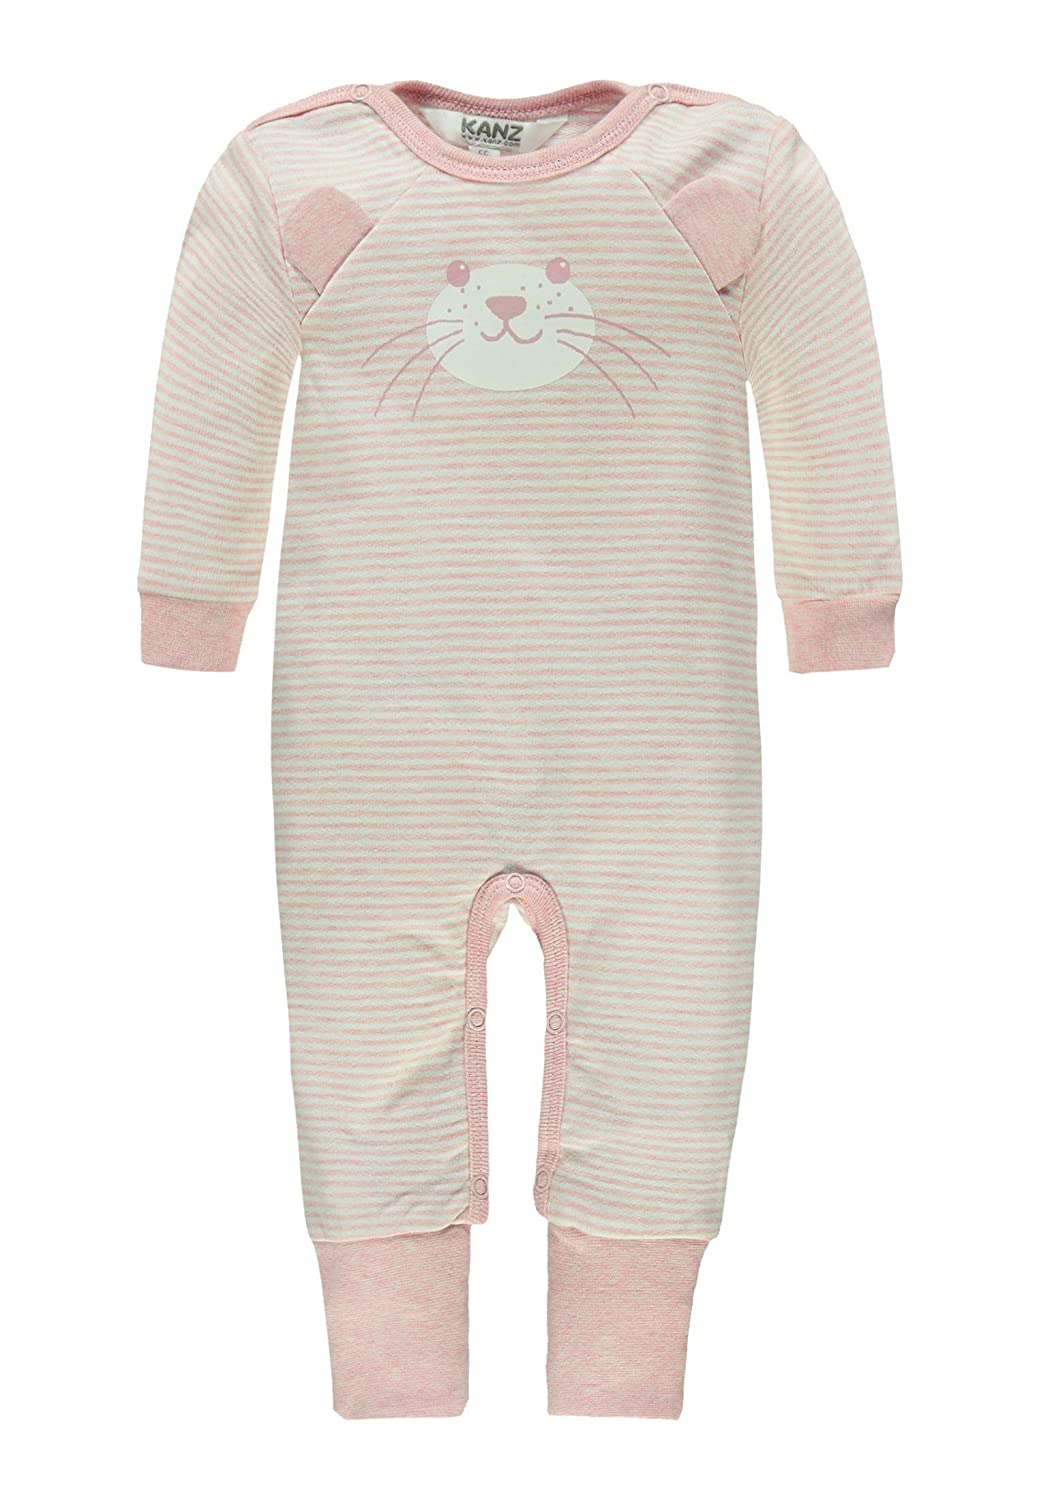 Kanz Unisex Baby Overall